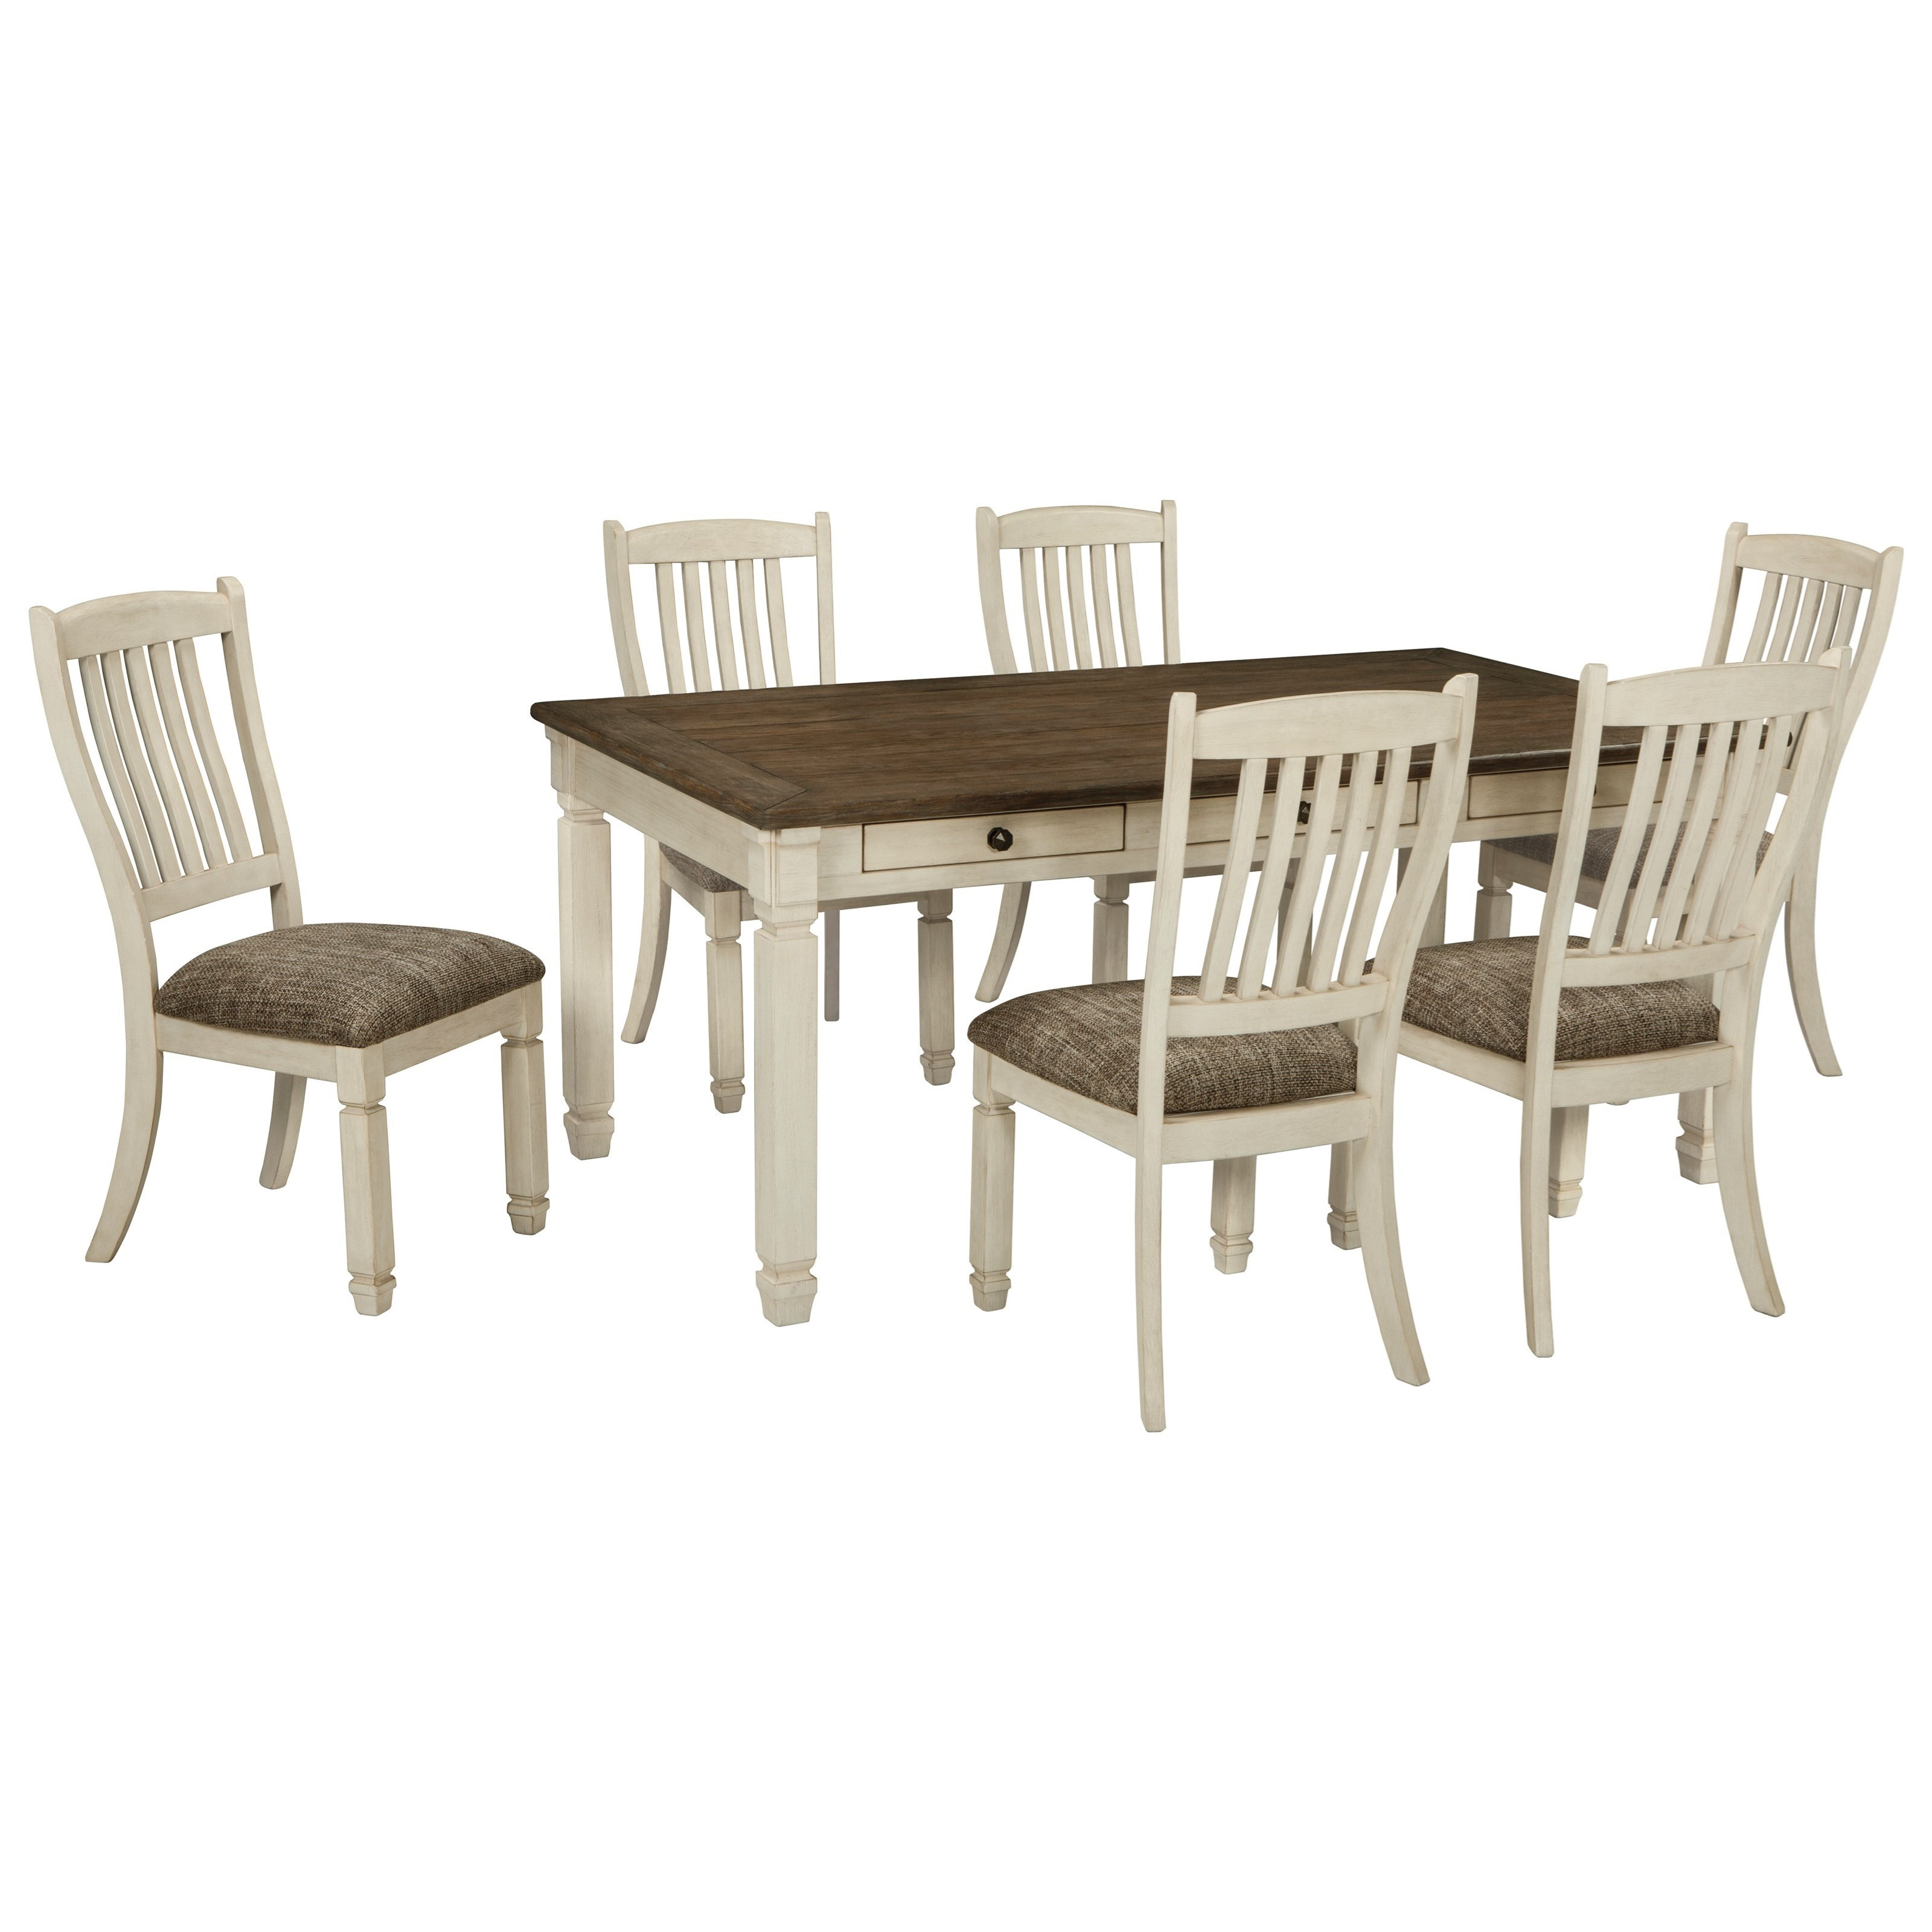 Best ideas about Table And Chair Set . Save or Pin Bolanburg Relaxed Vintage 7 Piece Table and Chair Set Now.